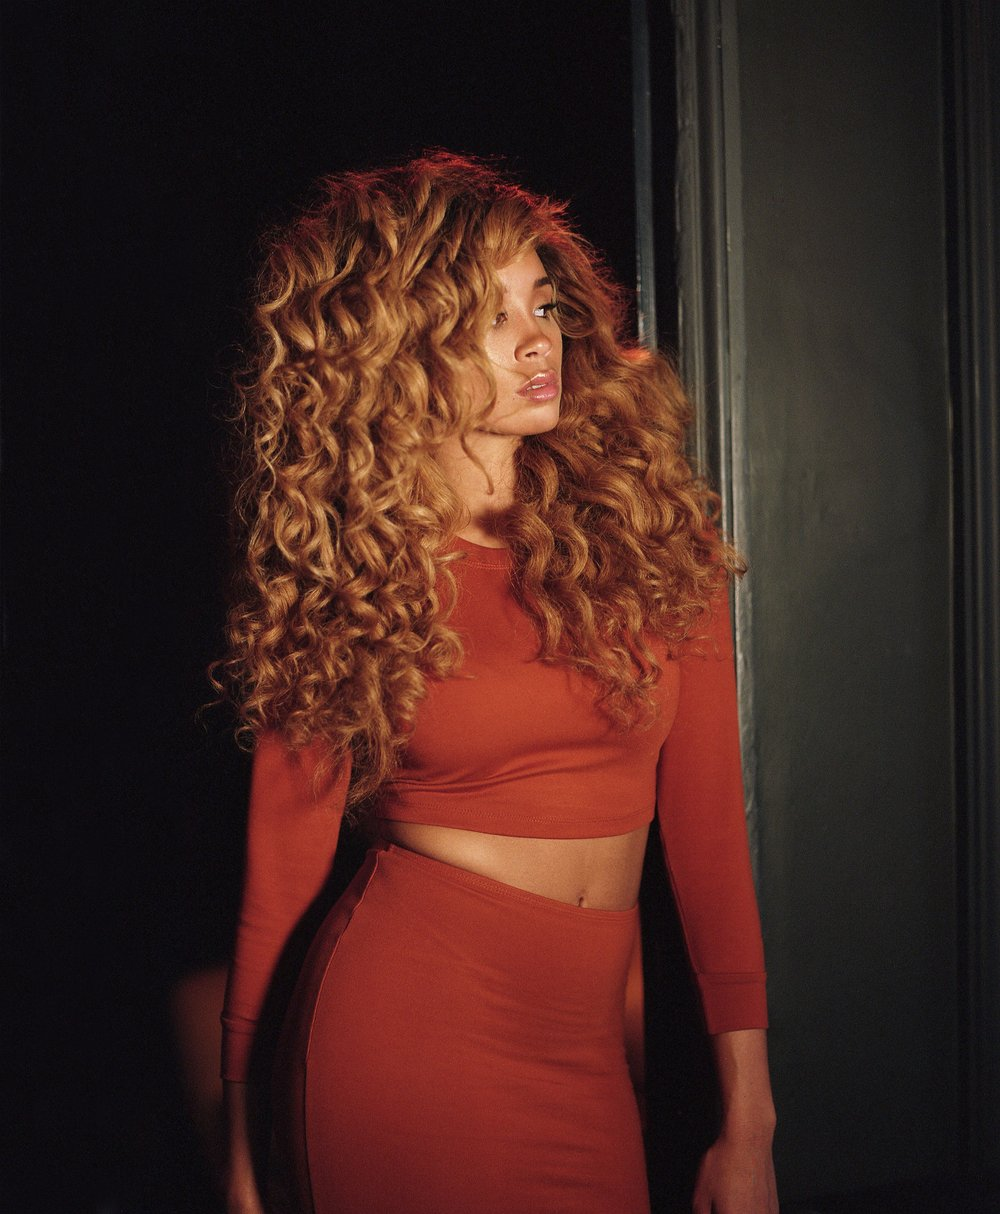 LIONBABE / CARBON COPY MAGAZINE